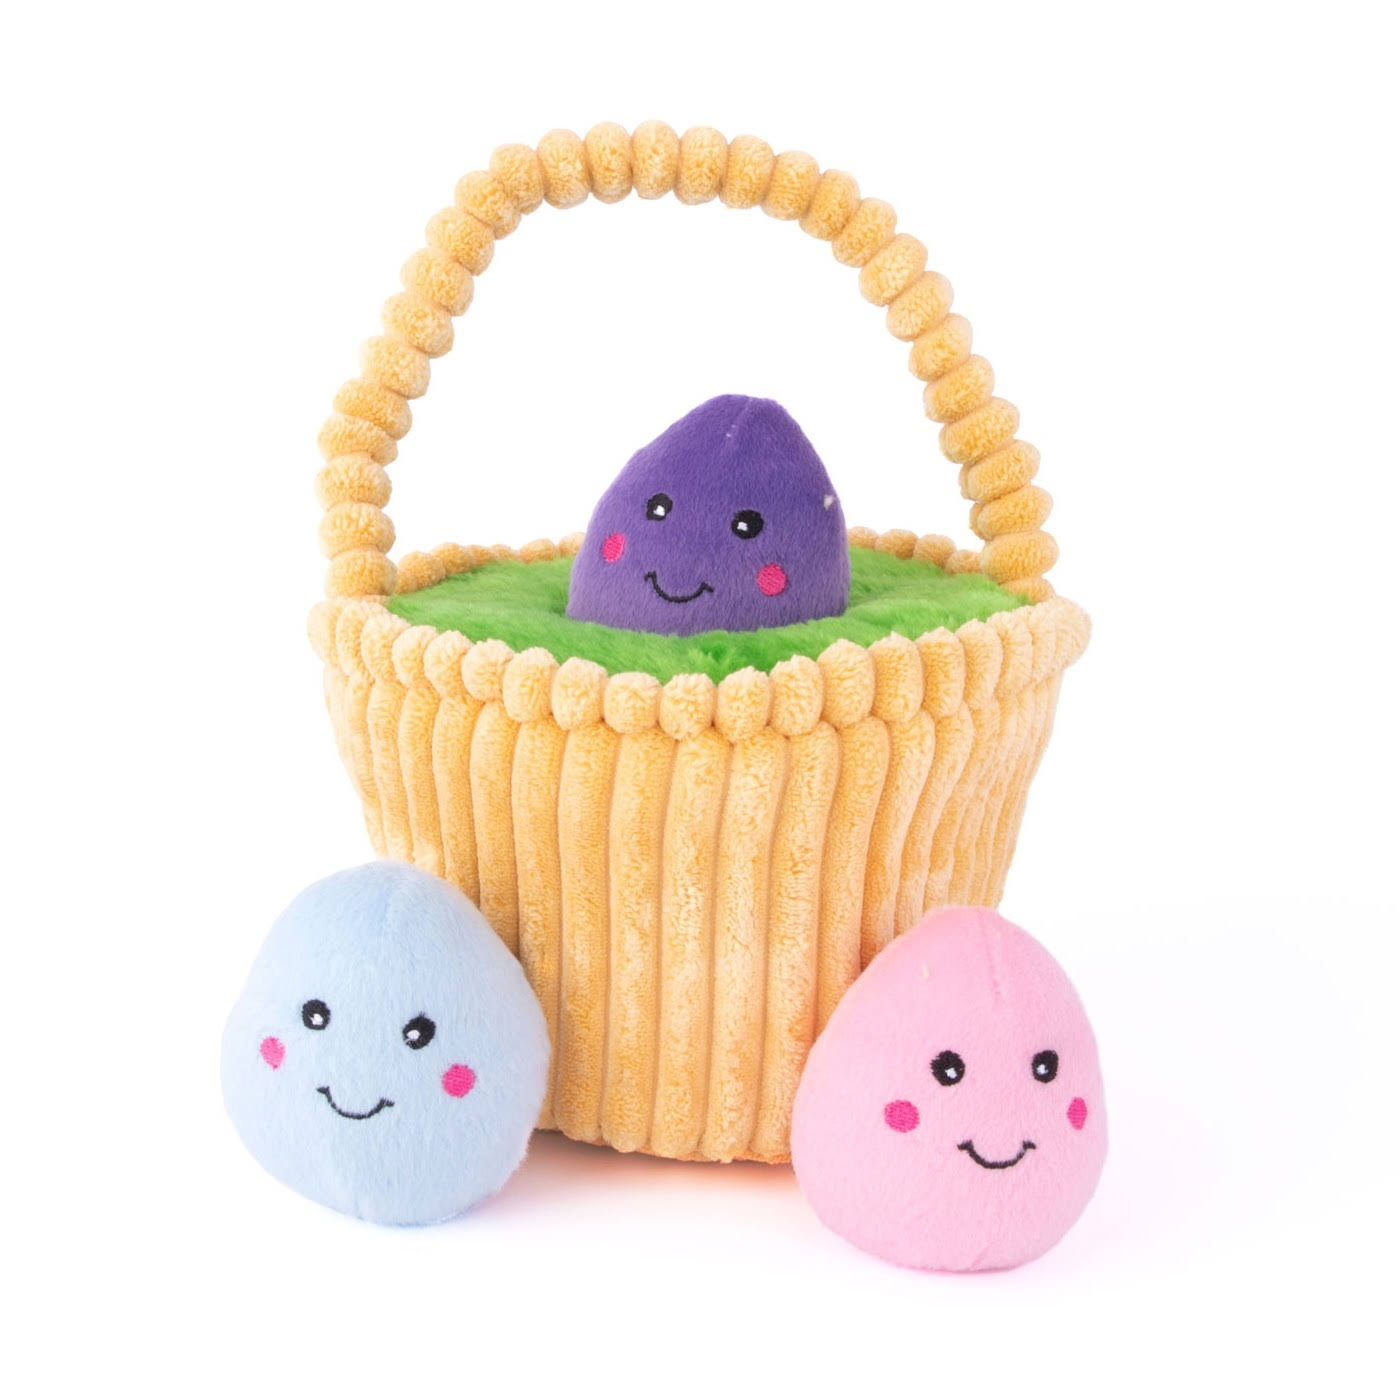 ZippyPaws Zippy Burrow Hide & Seek Easter Egg Basket Dog Toy